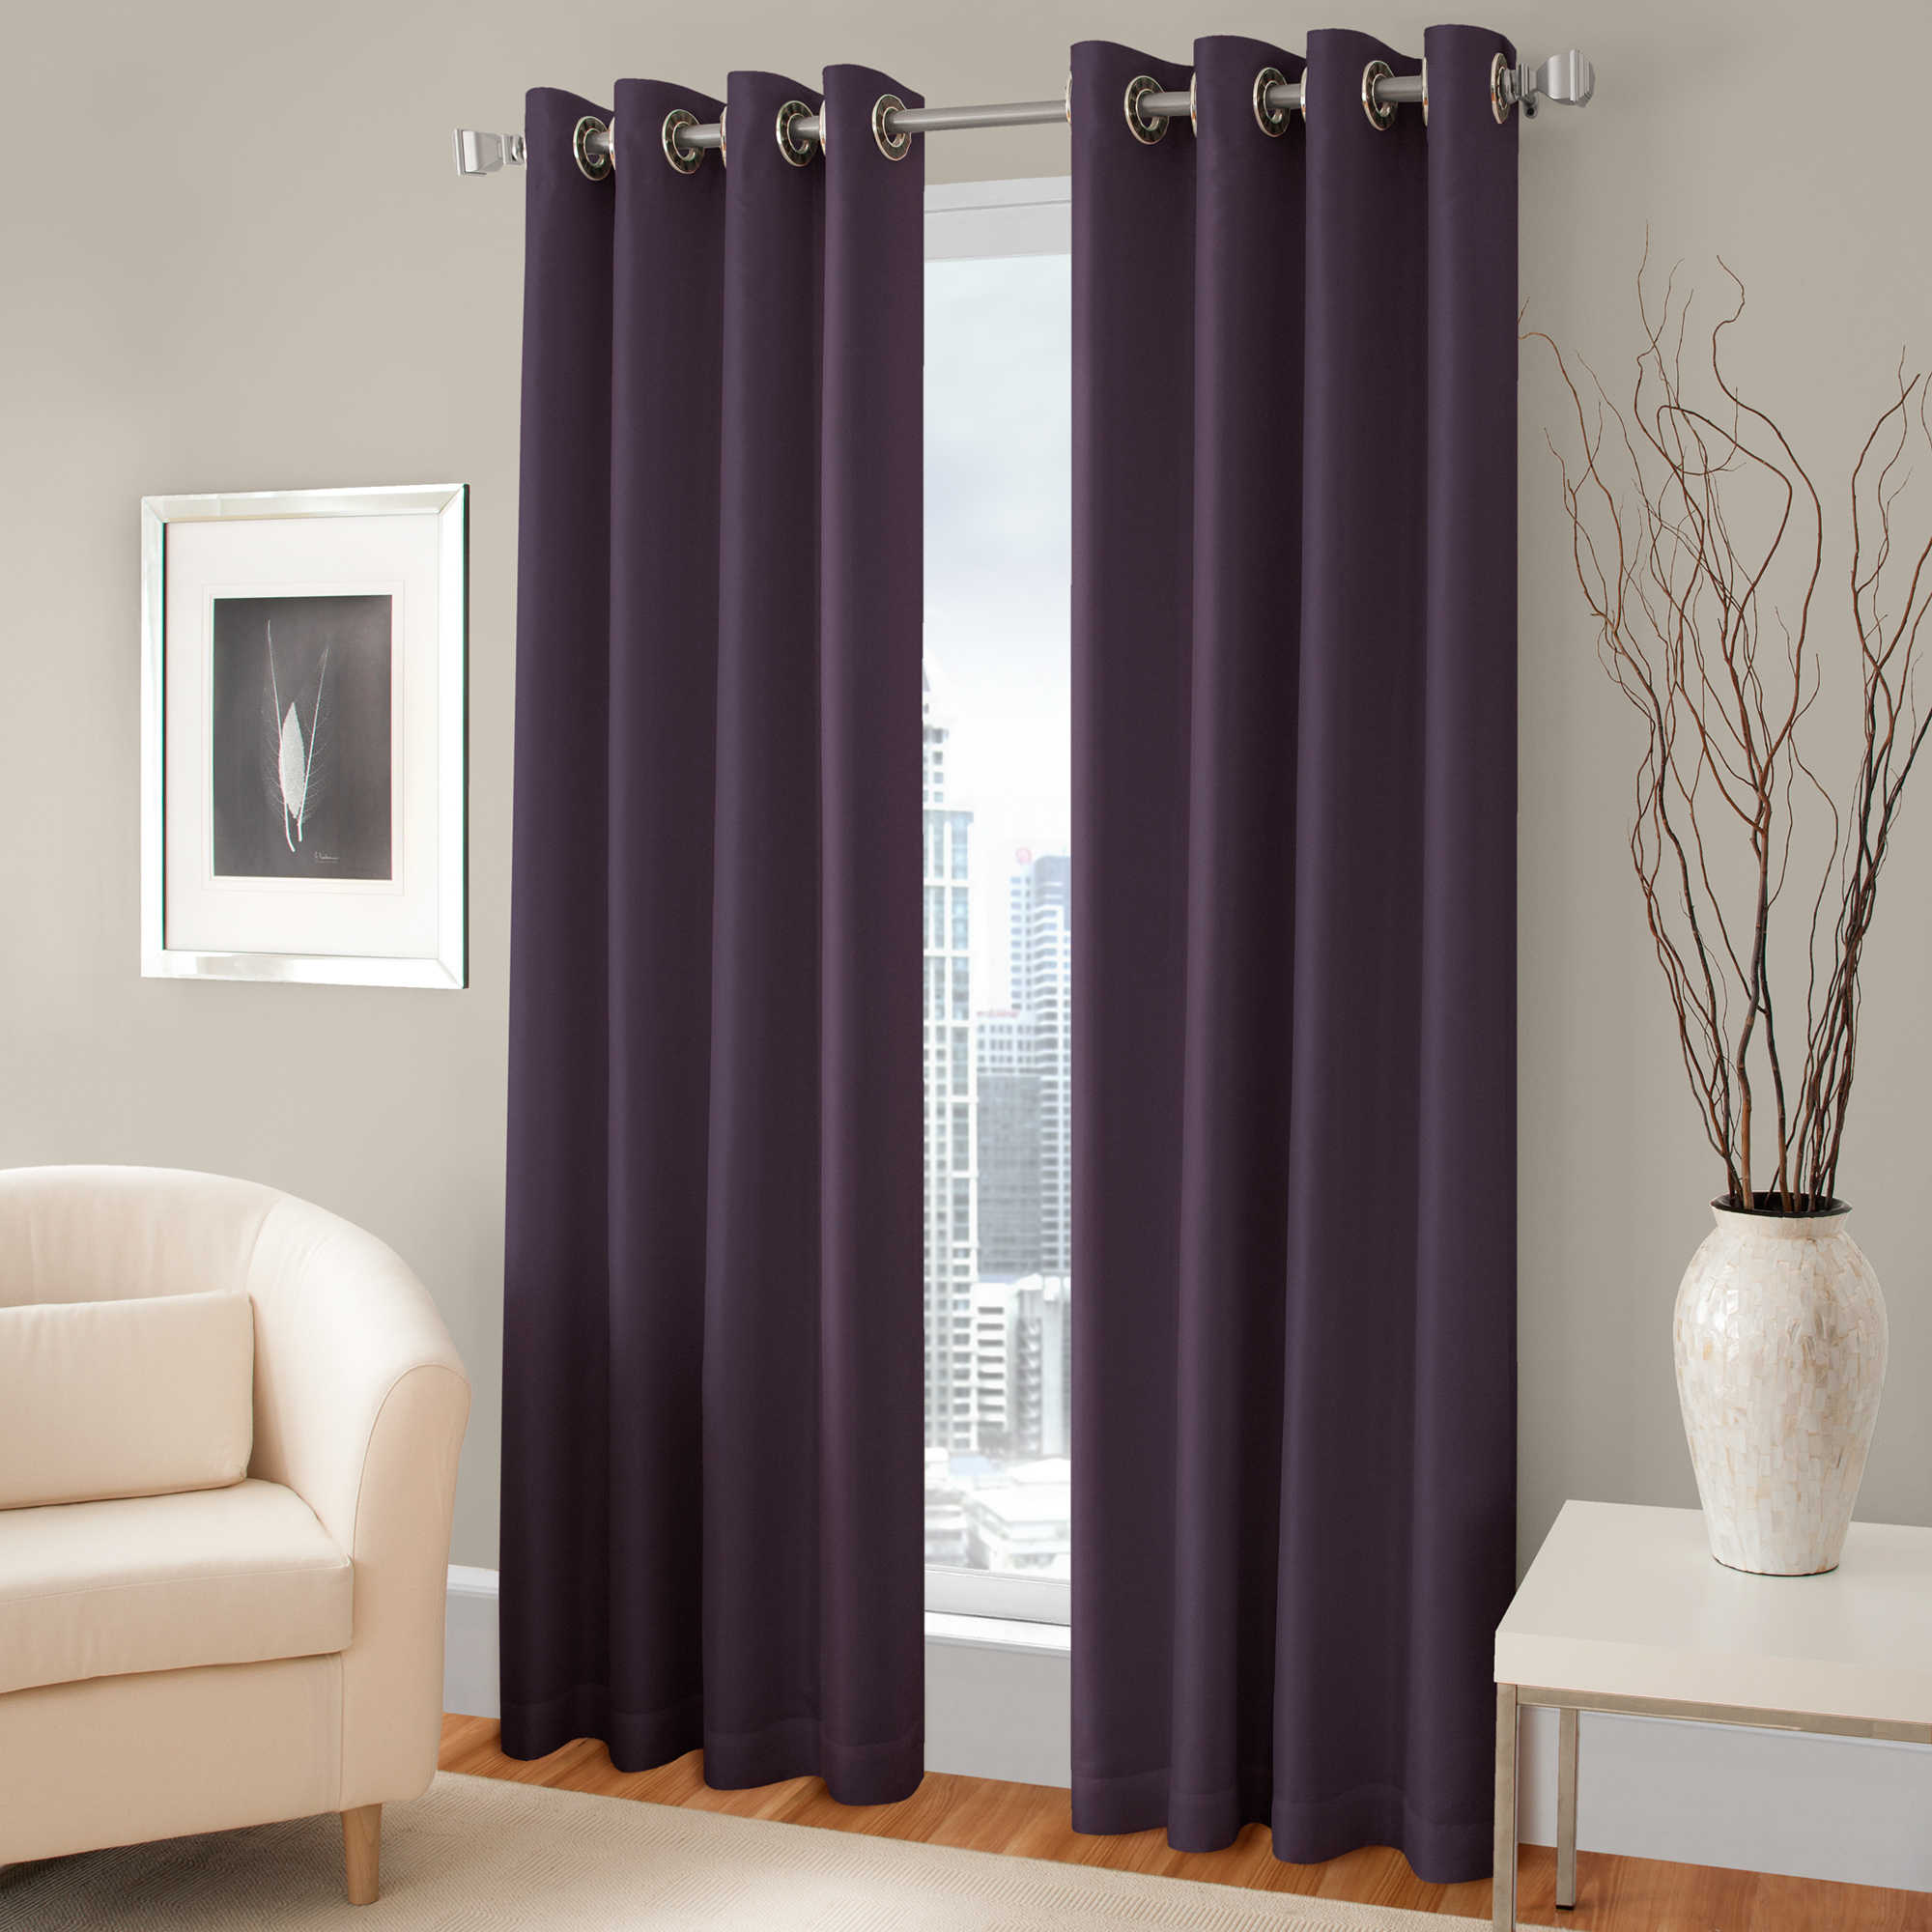 curtains treatments blackout joss max pdp navara reviews panel window grommets for main ikat thermal single grommet curtain